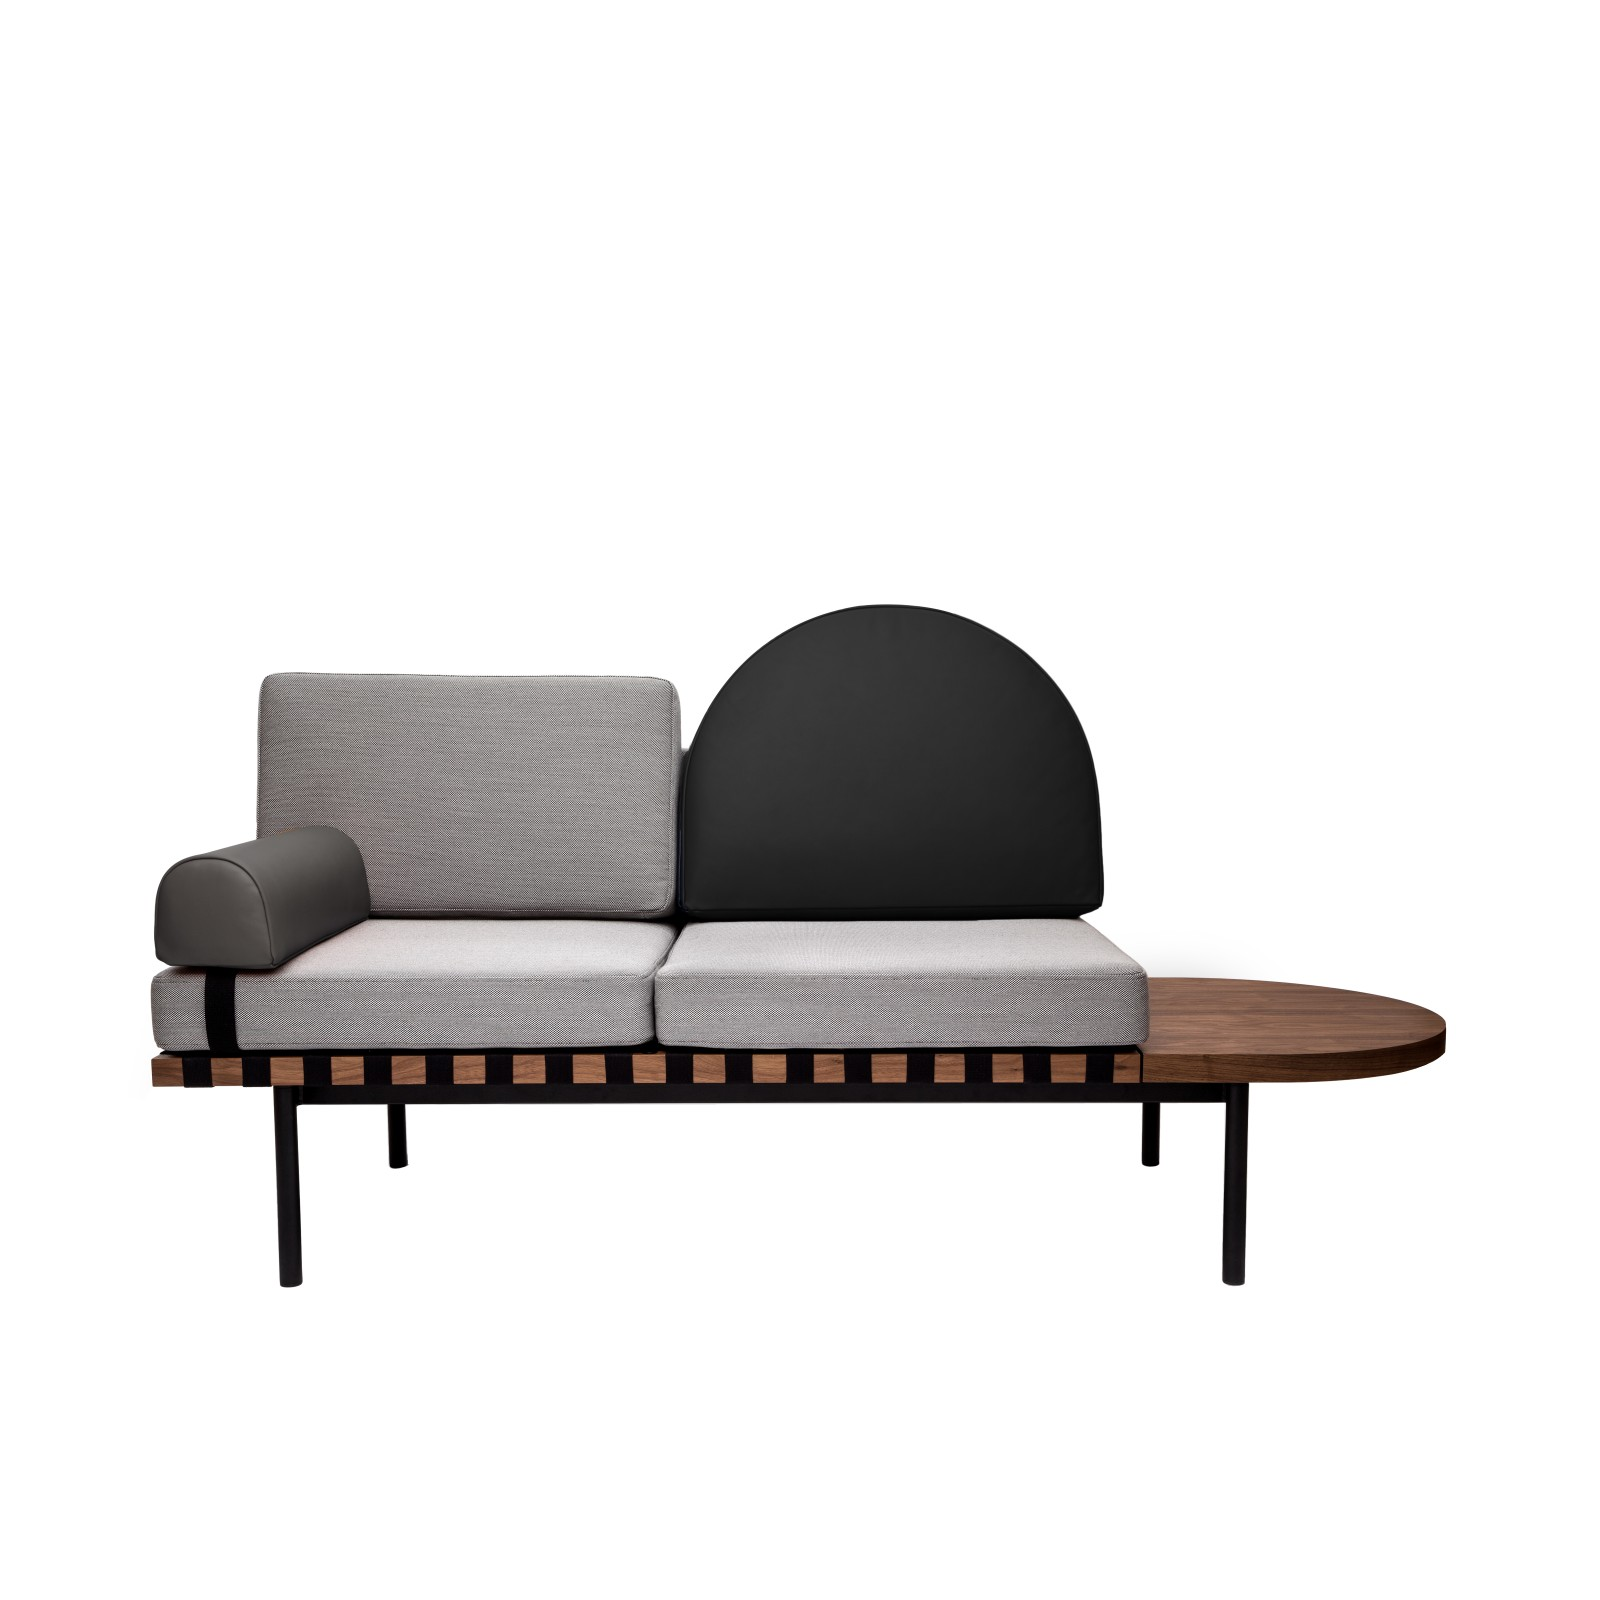 Grid Daybed Steelcut Trio 2 133, Black leather, Grey leather